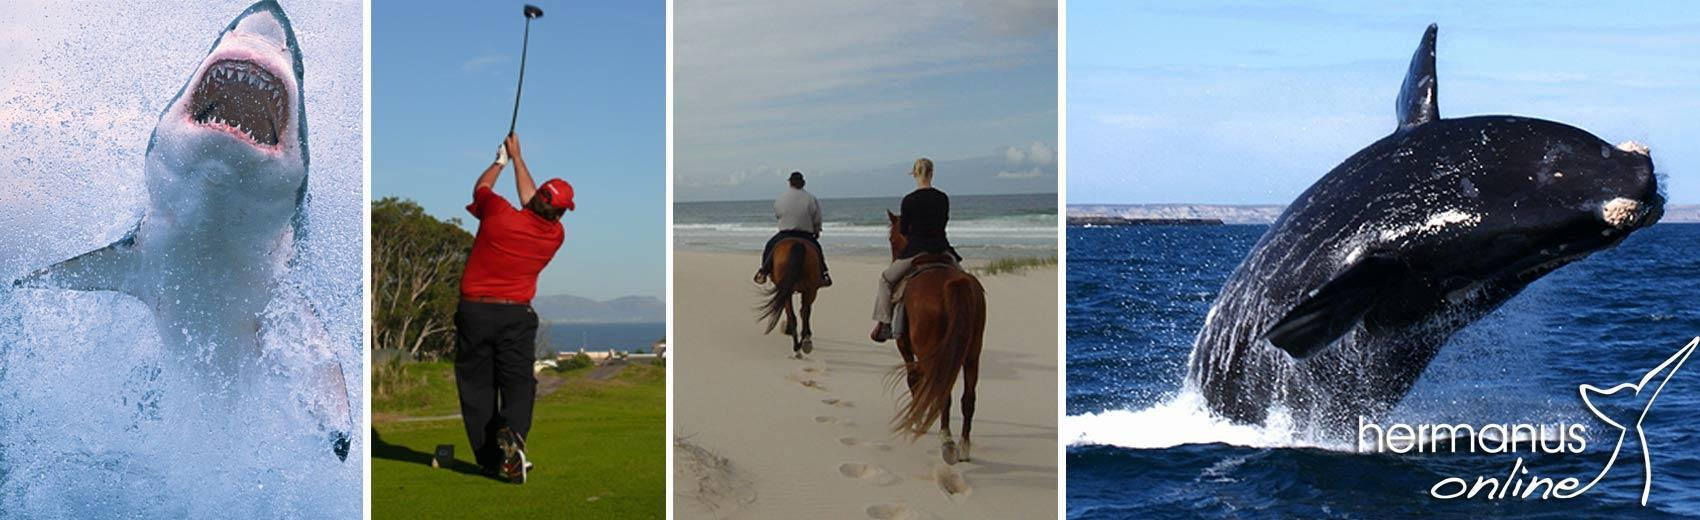 Top Activities - Hermanus